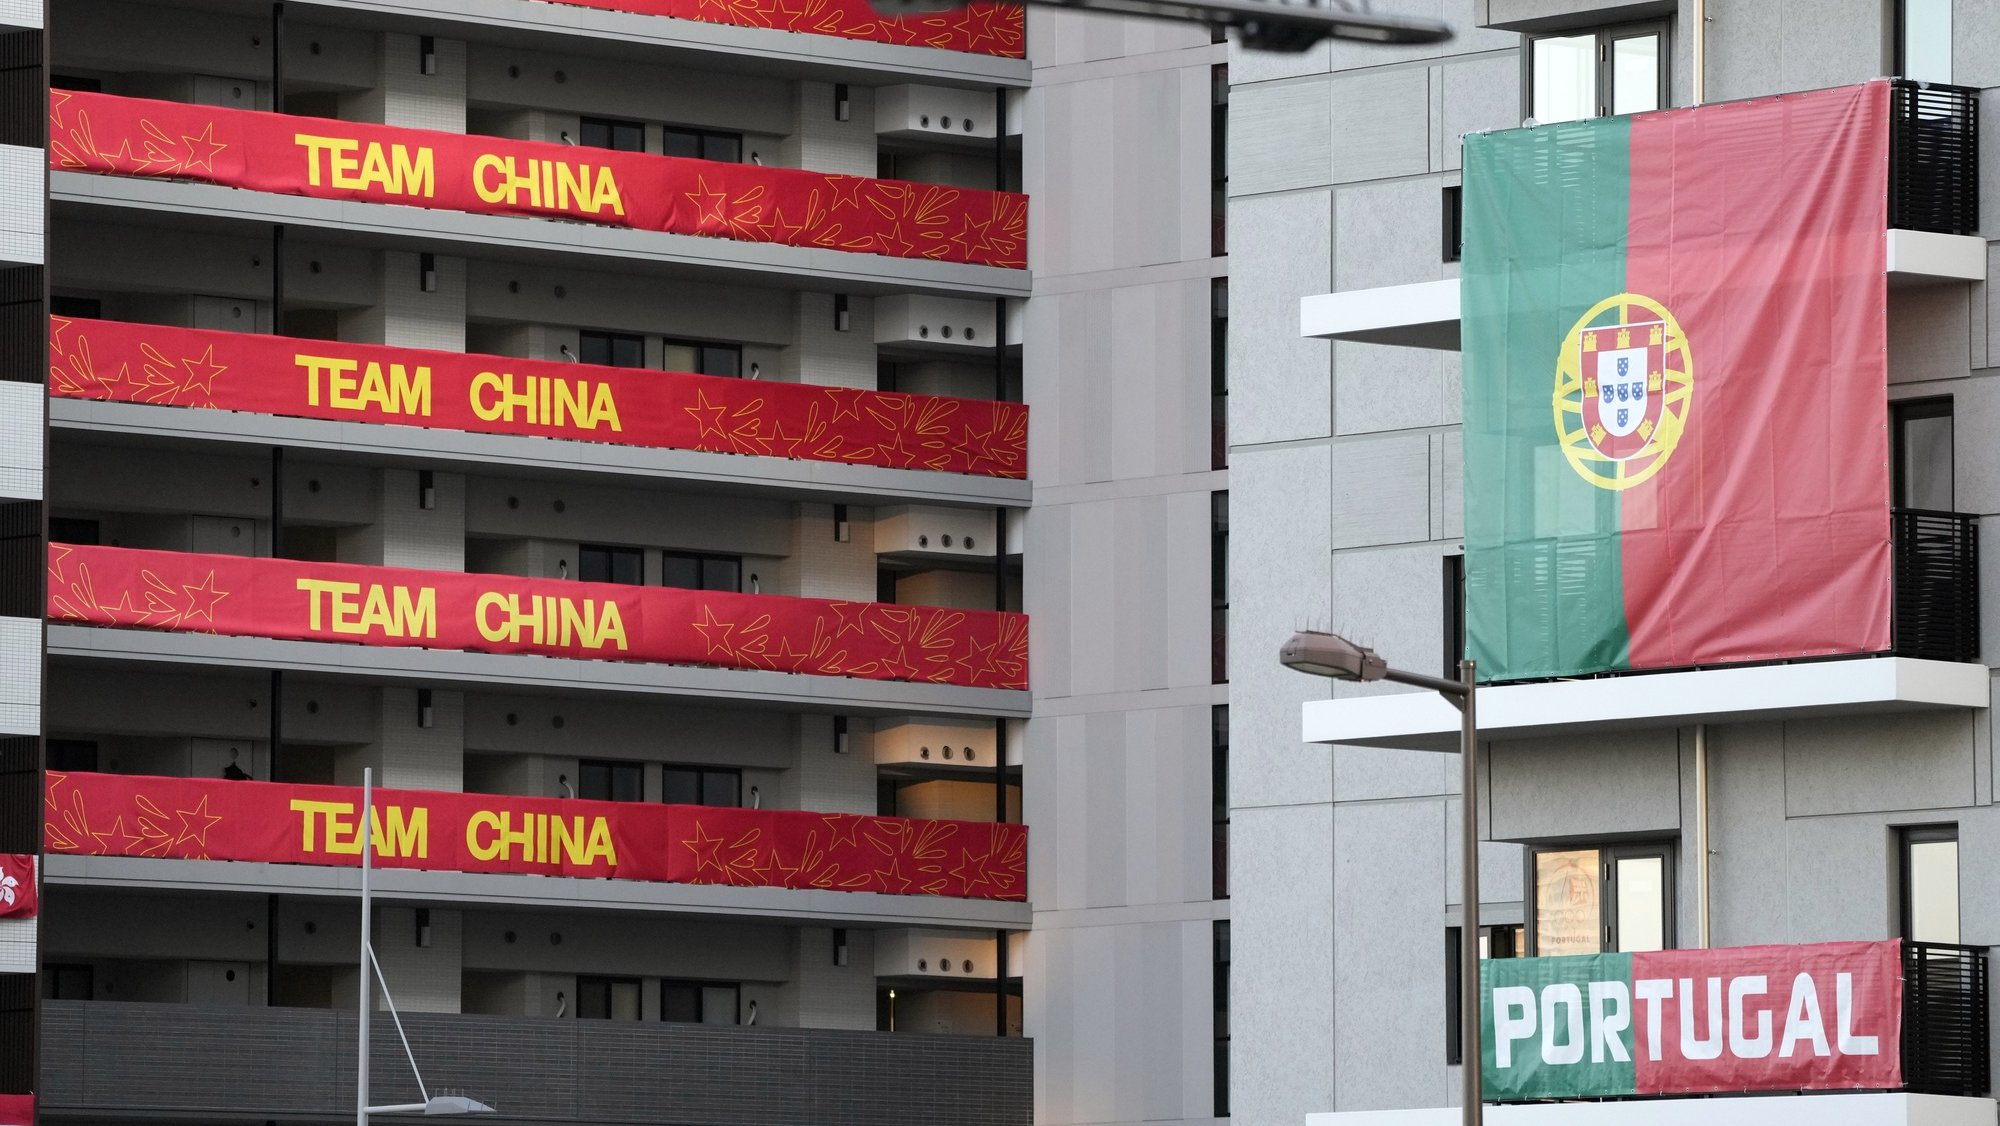 epa09353296 Flags from the Portuguese Olympic team are displayed on buildings hosting Olympic Games participants at the Olympic Village in Tokyo, Japan, 19 July 2021. Just few days before the opening of the Tokyo Games, the Tokyo Olympic Games organizing committee said that 21 people have been certified as close contacts of the three South African men's national soccer team players who have tested positive for COVID-19 and stayed in the Olympic Village.  EPA/FRANCK ROBICHON